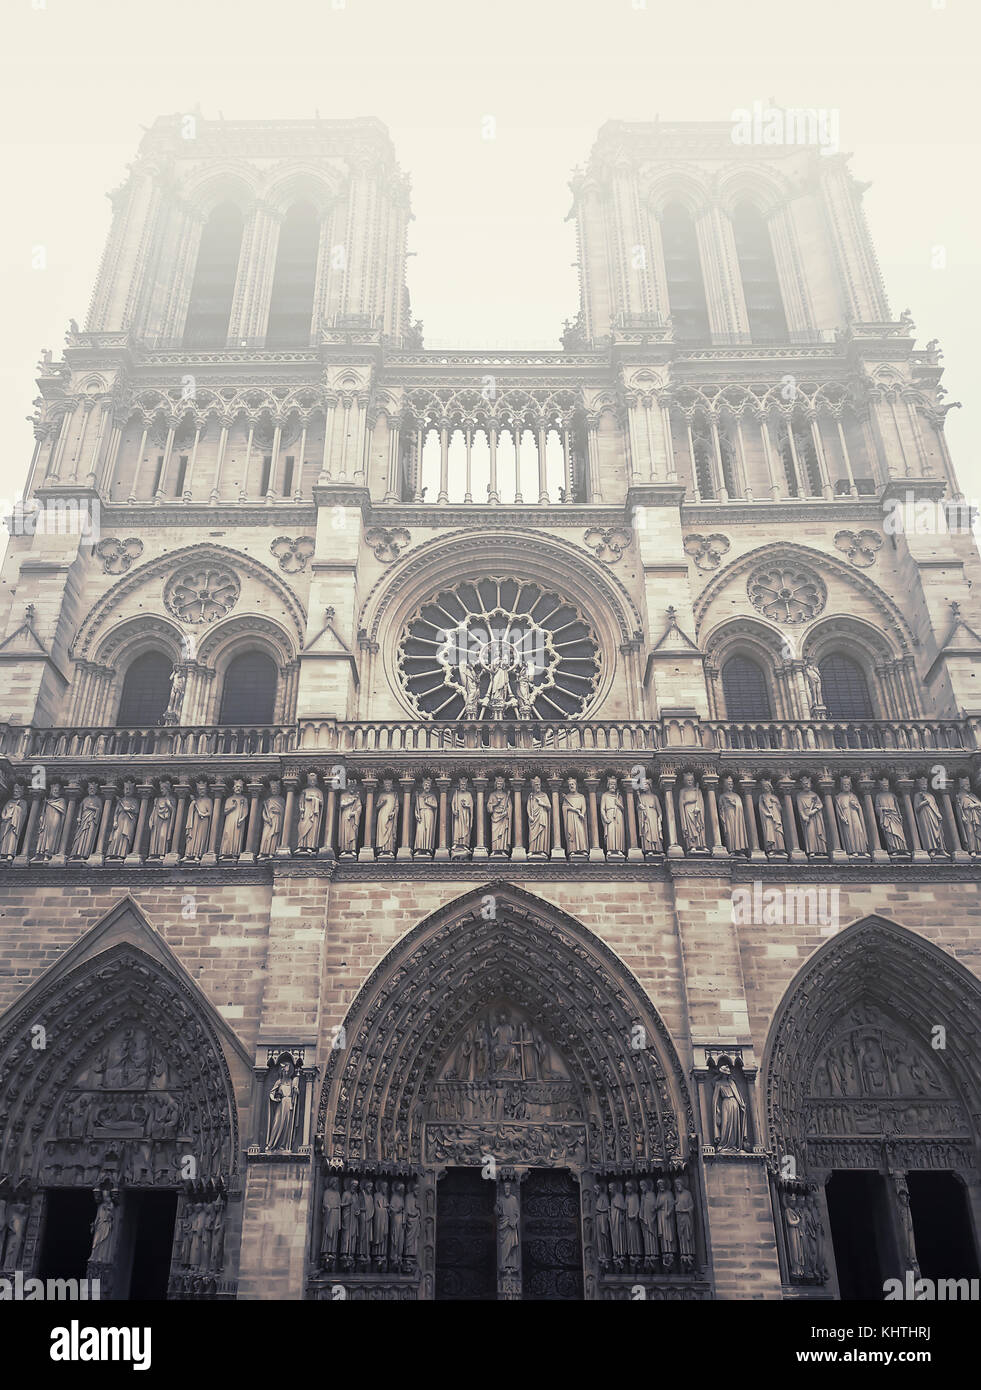 Facade of Notre Dame de Paris cathedral in a foggy morning. Stock Photo